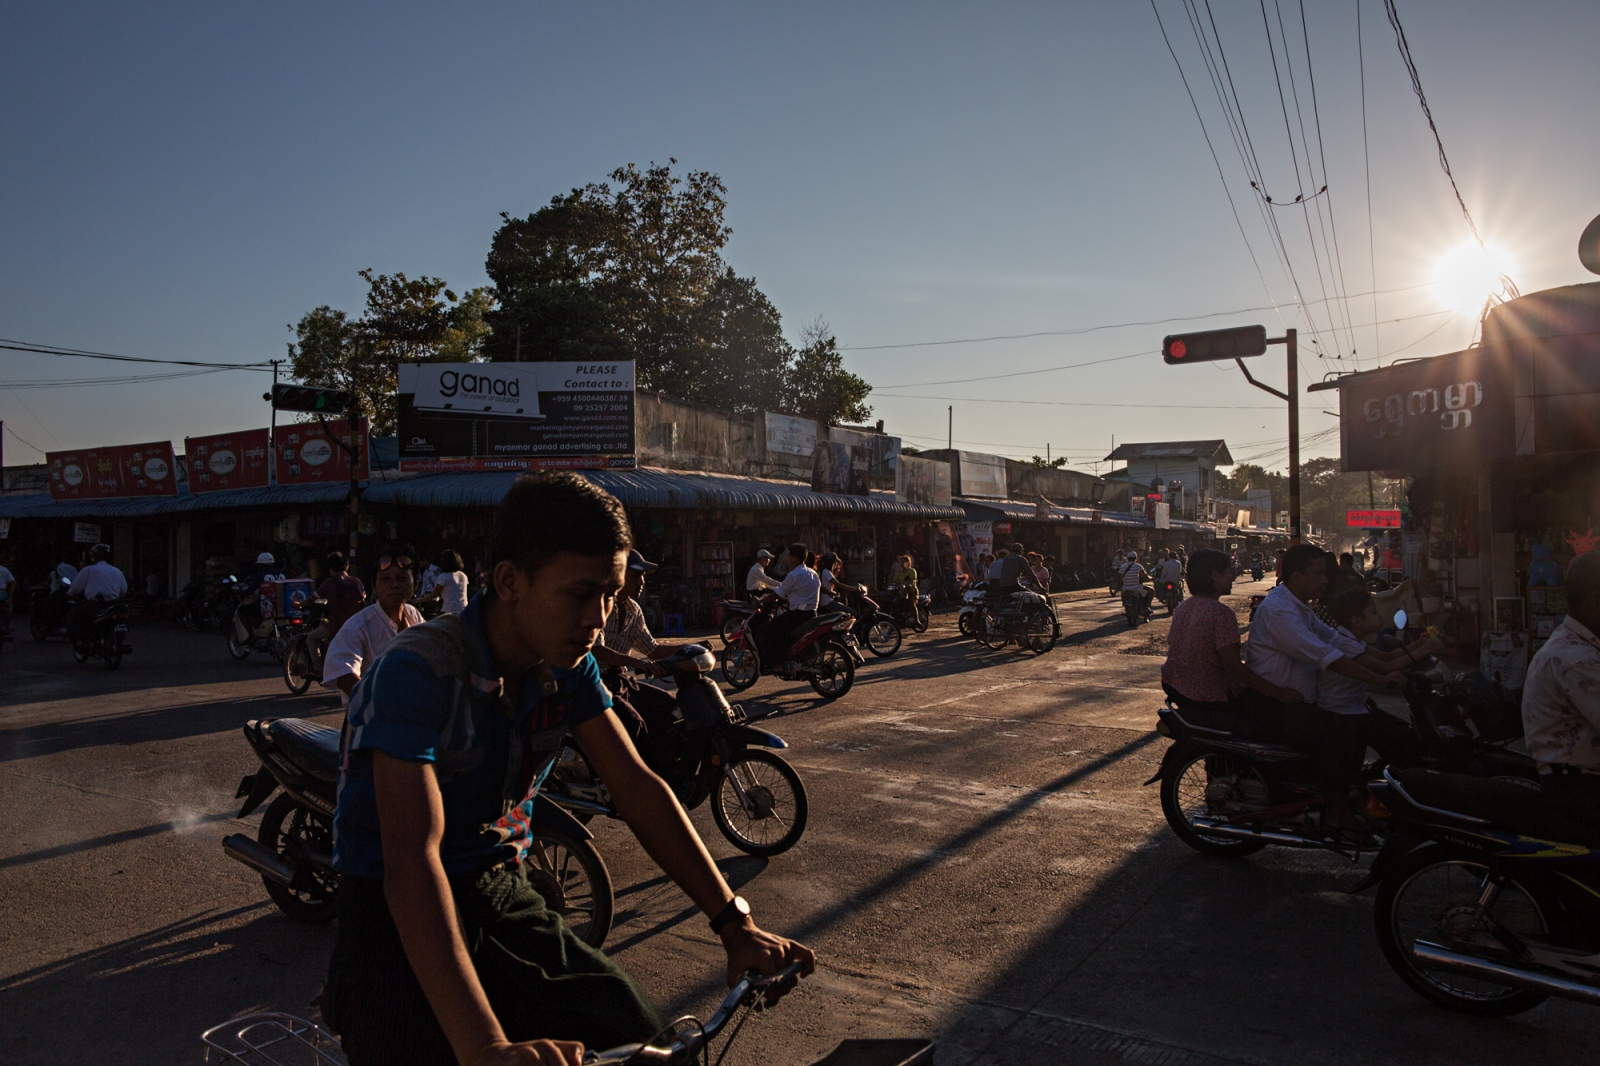 Bikes and motorbikes mix in traffic in a small town on Irrawaddy River.